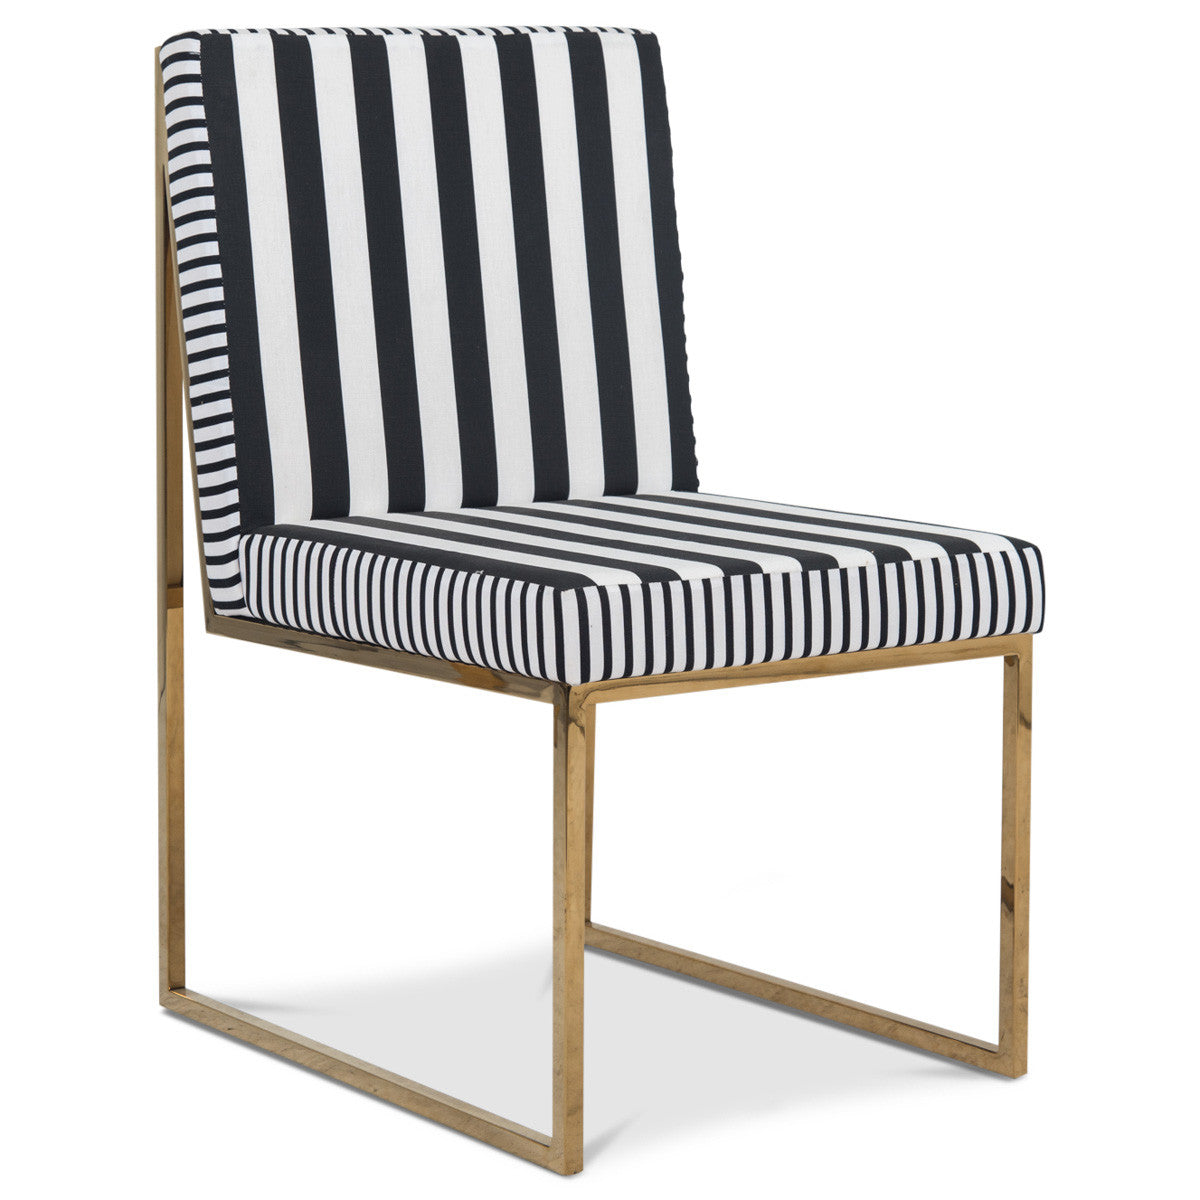 Goldfinger Dining Chair in Stripes - ModShop1.com